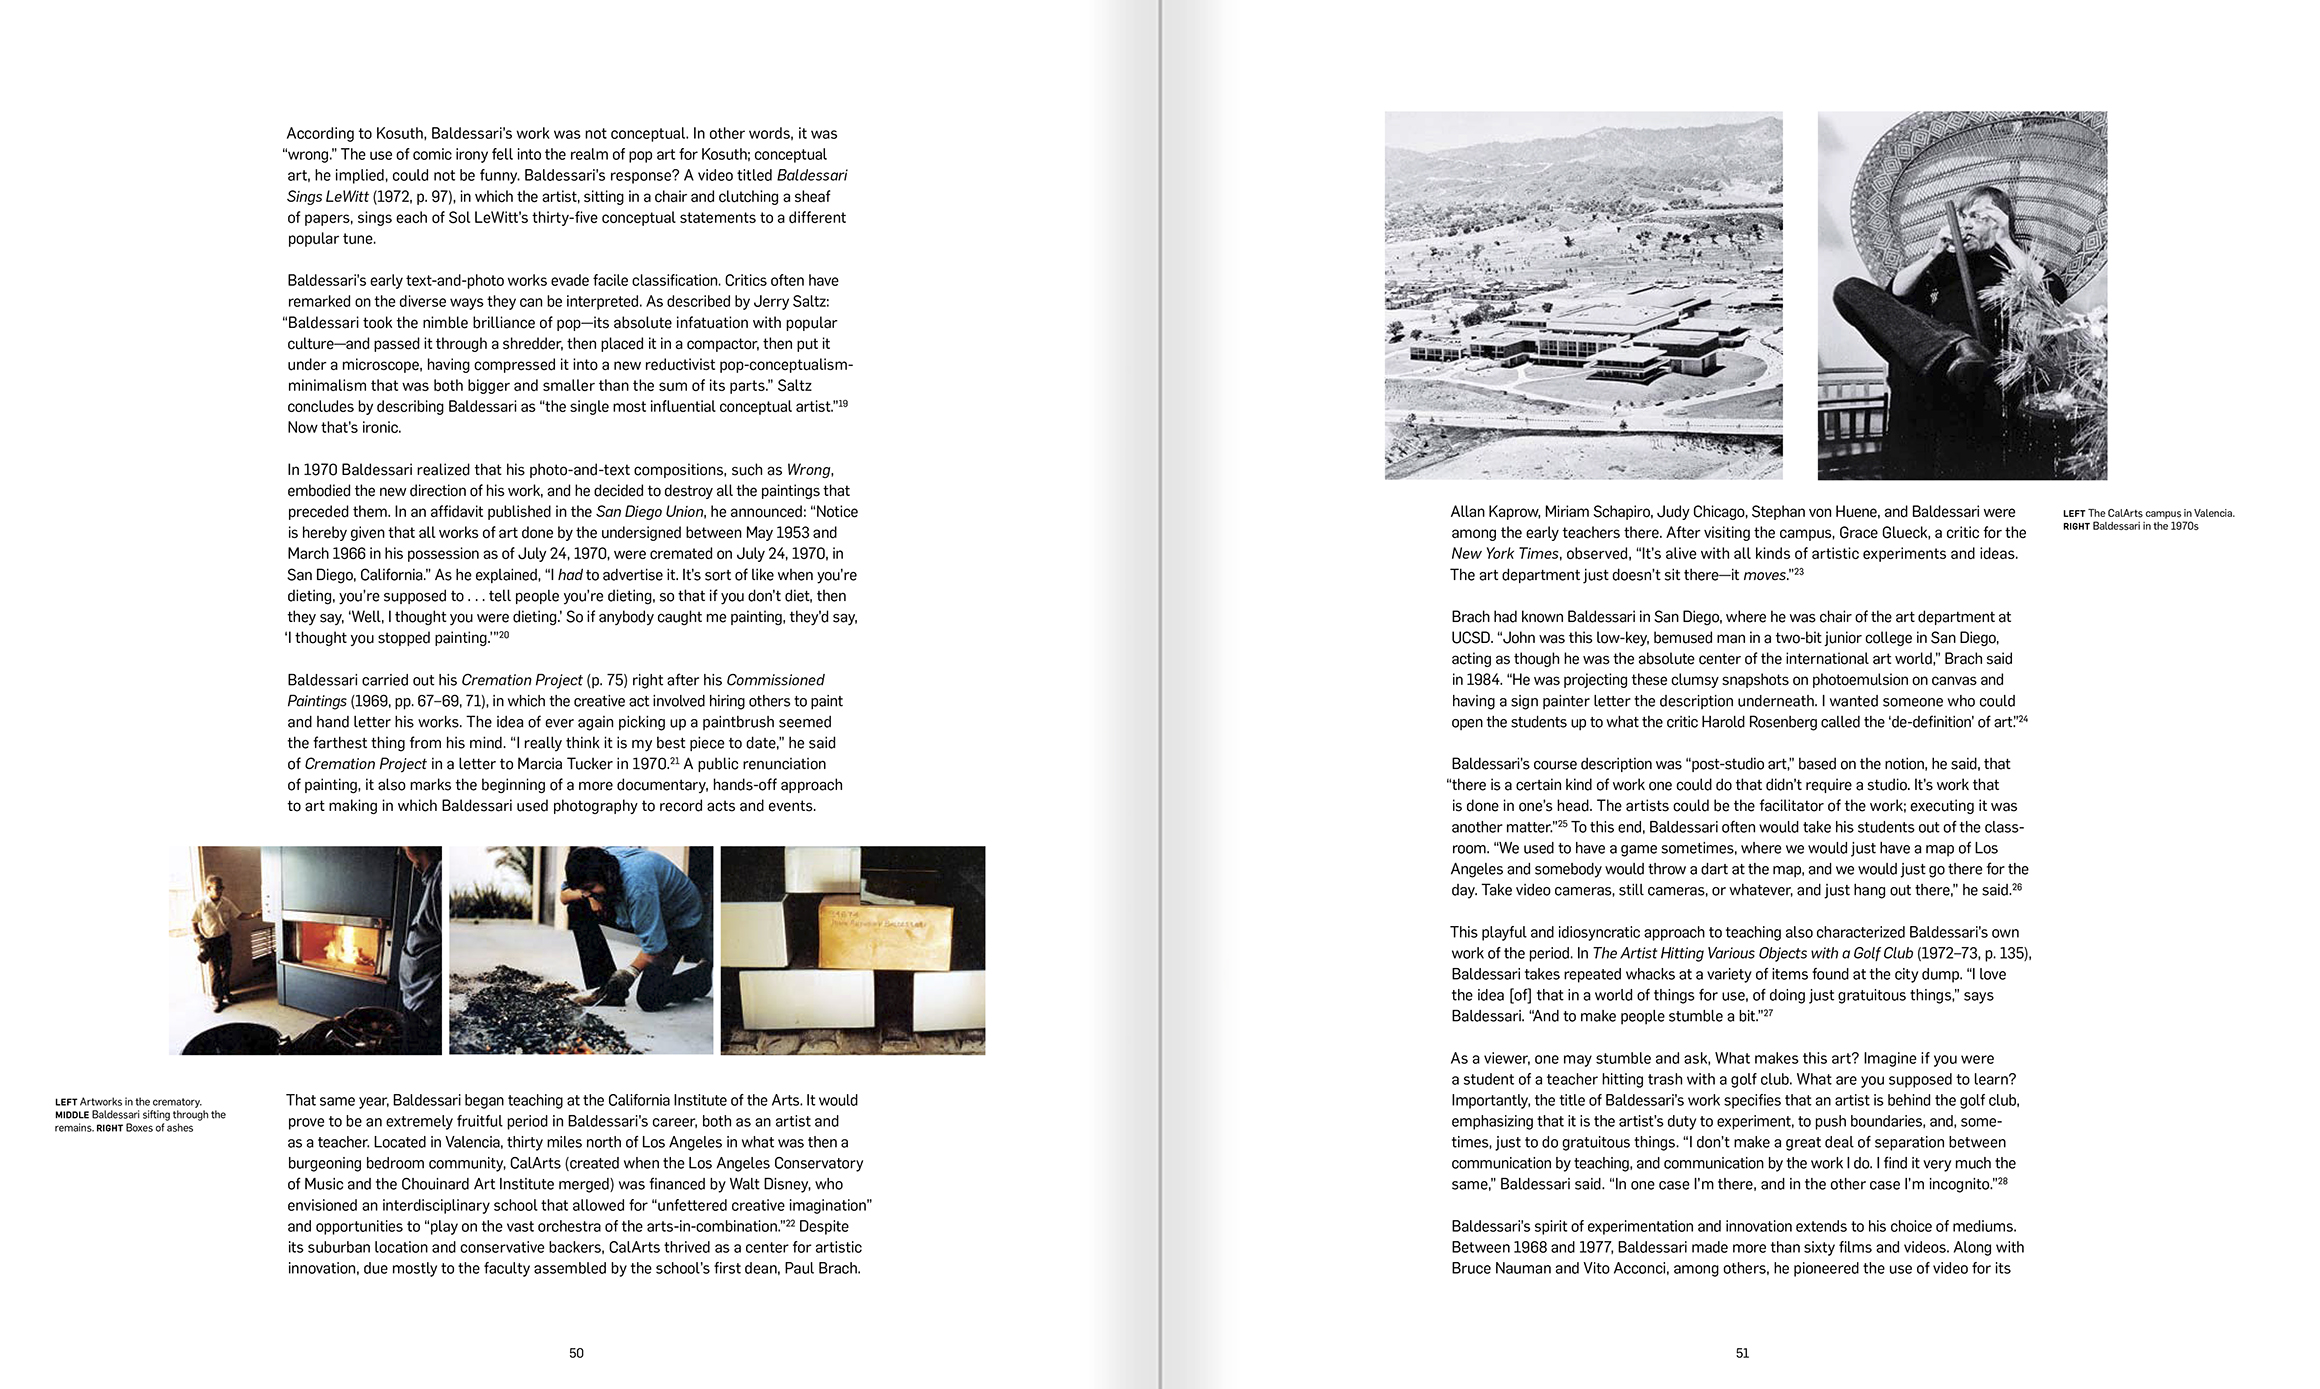 Selection from the catalogue 'John Baldessari. Pure Beauty', pages 50 and 51